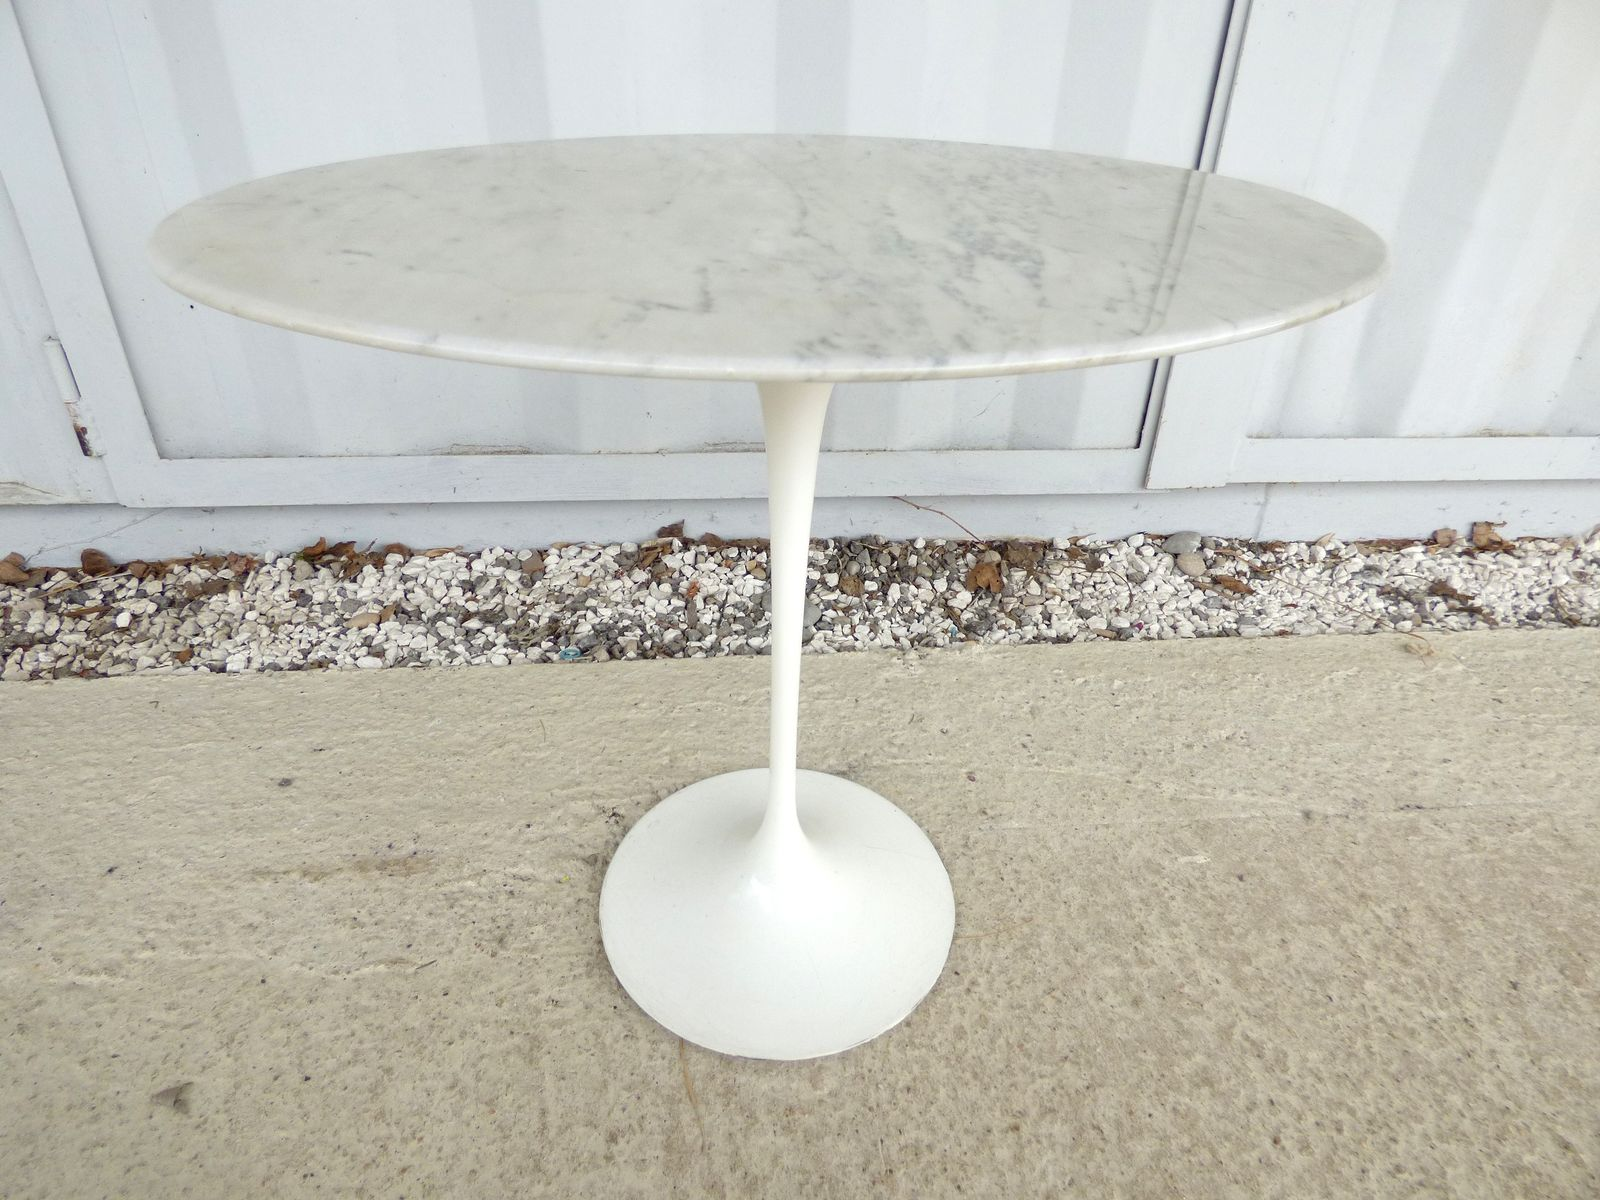 Oval Gueridon Table by Eero Saarinen for Knoll 1960s for sale at